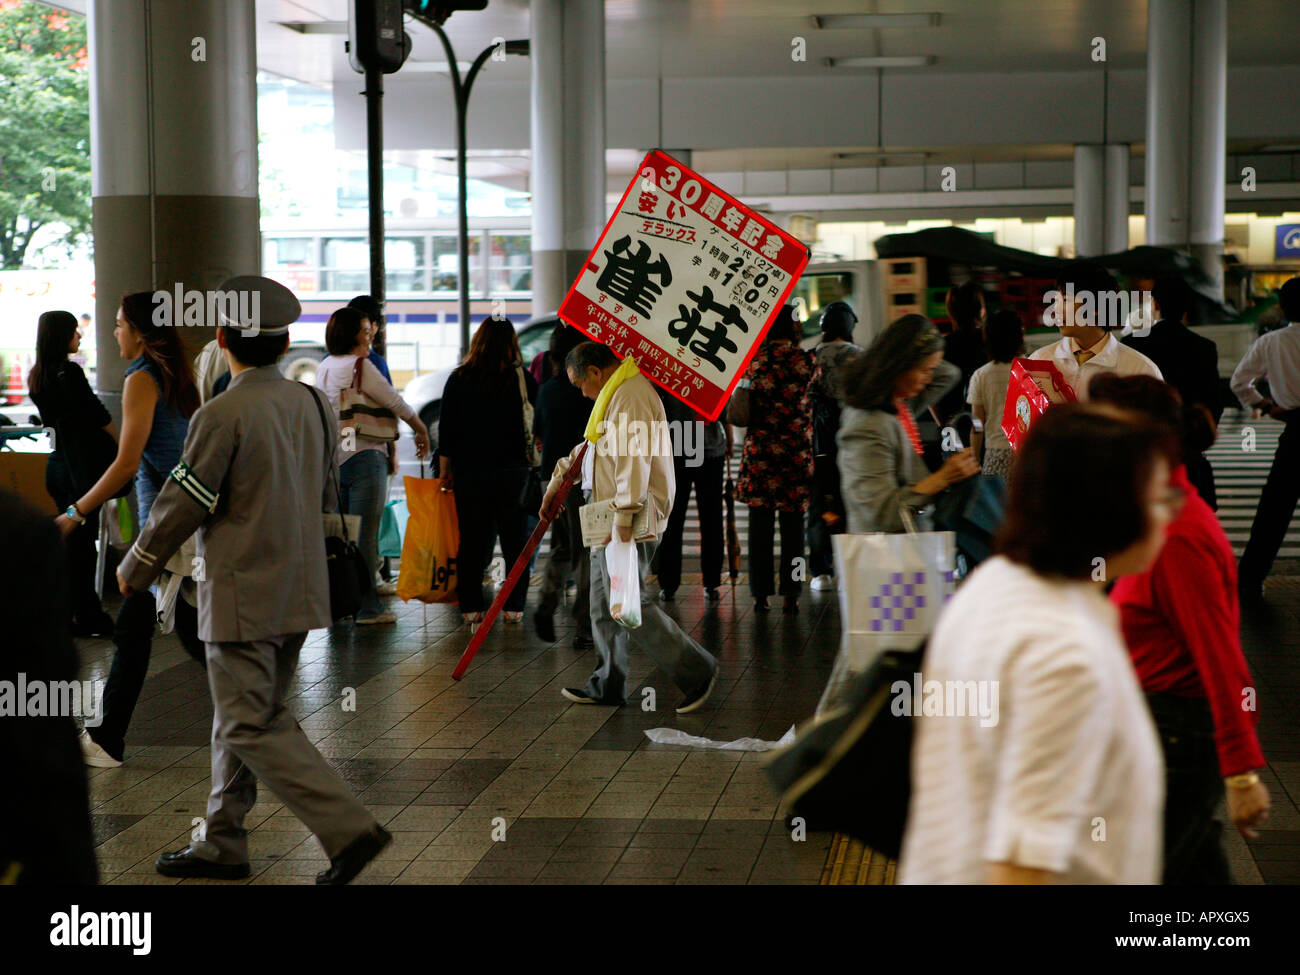 Homeless, Tokyo, Japan, Low paid day jobs for homeless, carrying advertising during rush hour, Shibuya Station Obdachlose, notdu - Stock Image